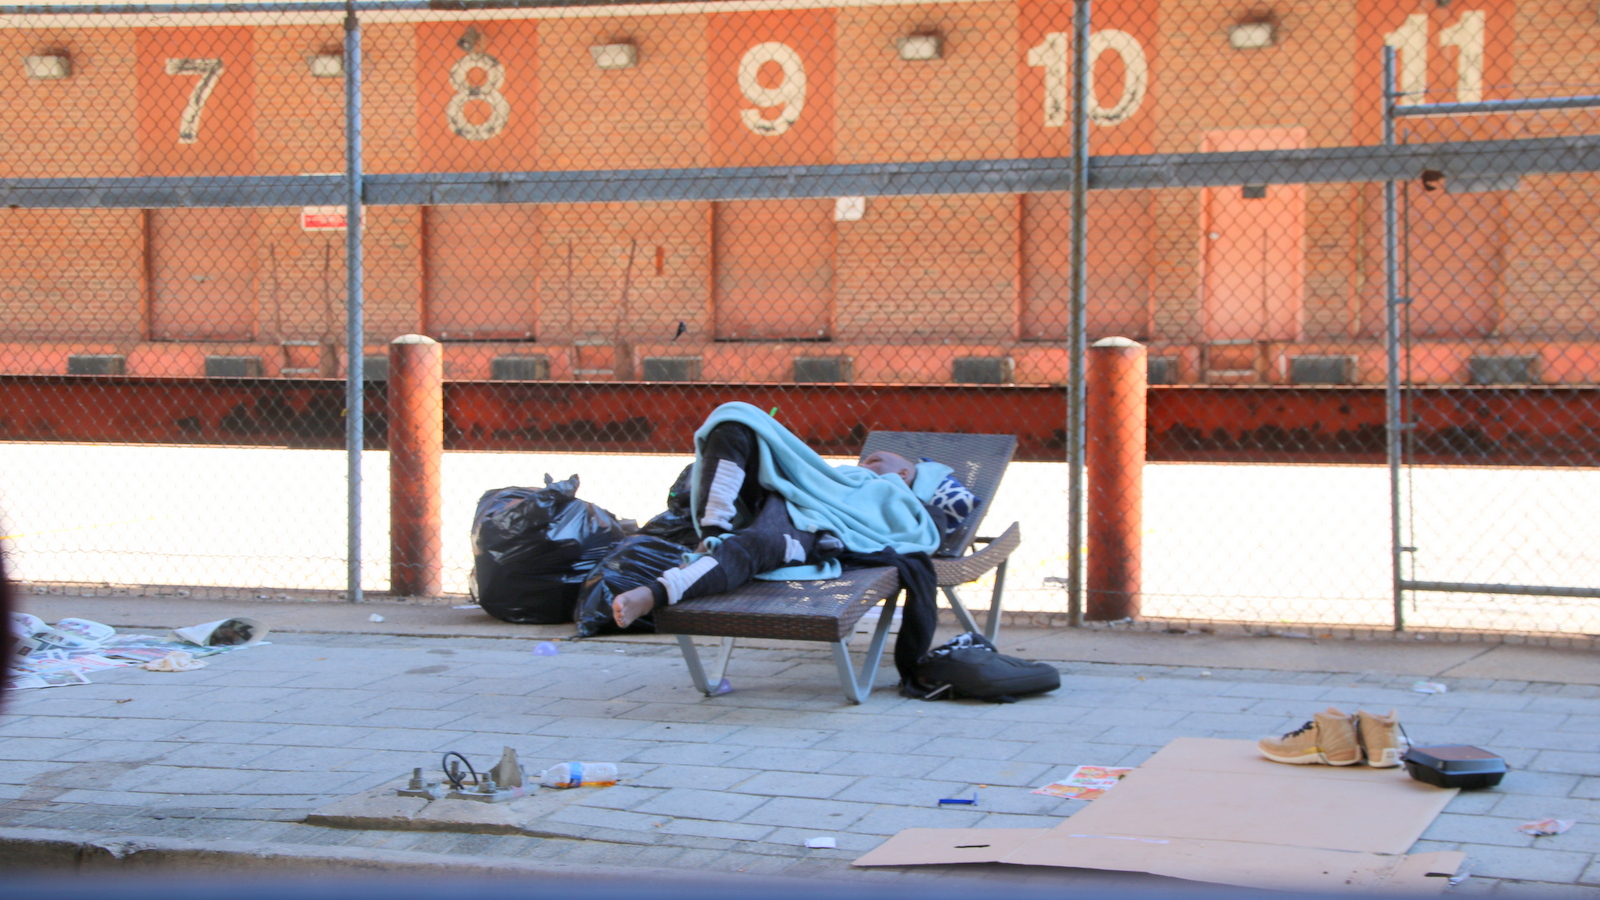 A man sleeps on a cot next to the Baltimore Sun's loading dock on bath Street. (Fern Shen)